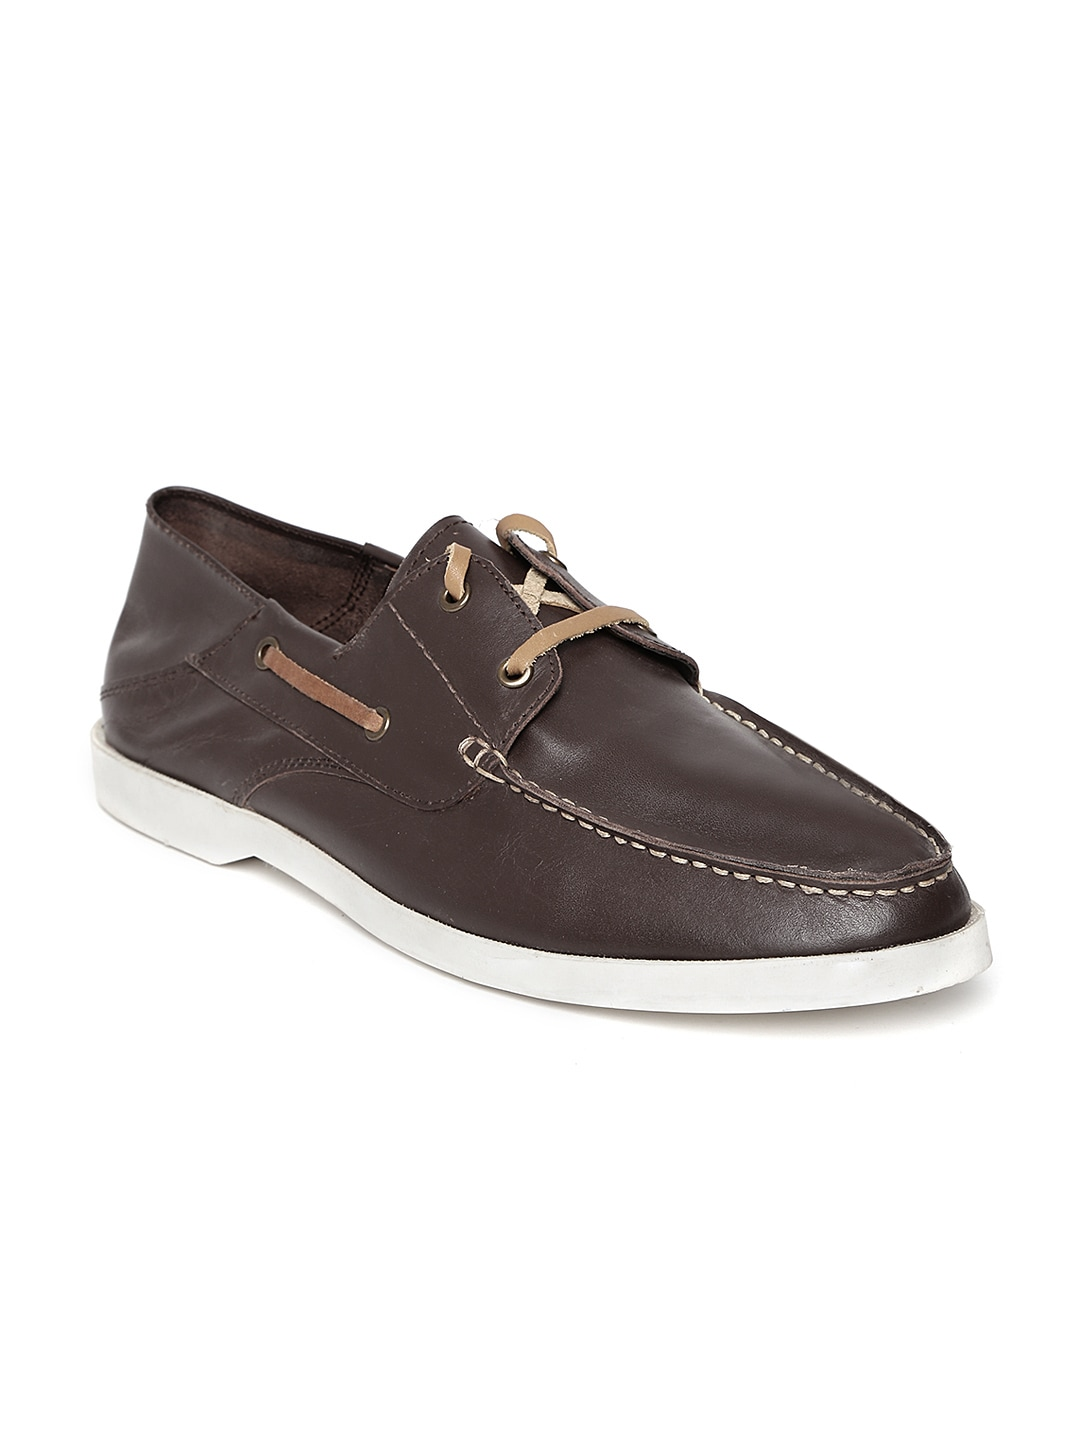 Famozi Famozi Men Brown Leather Casual Shoes